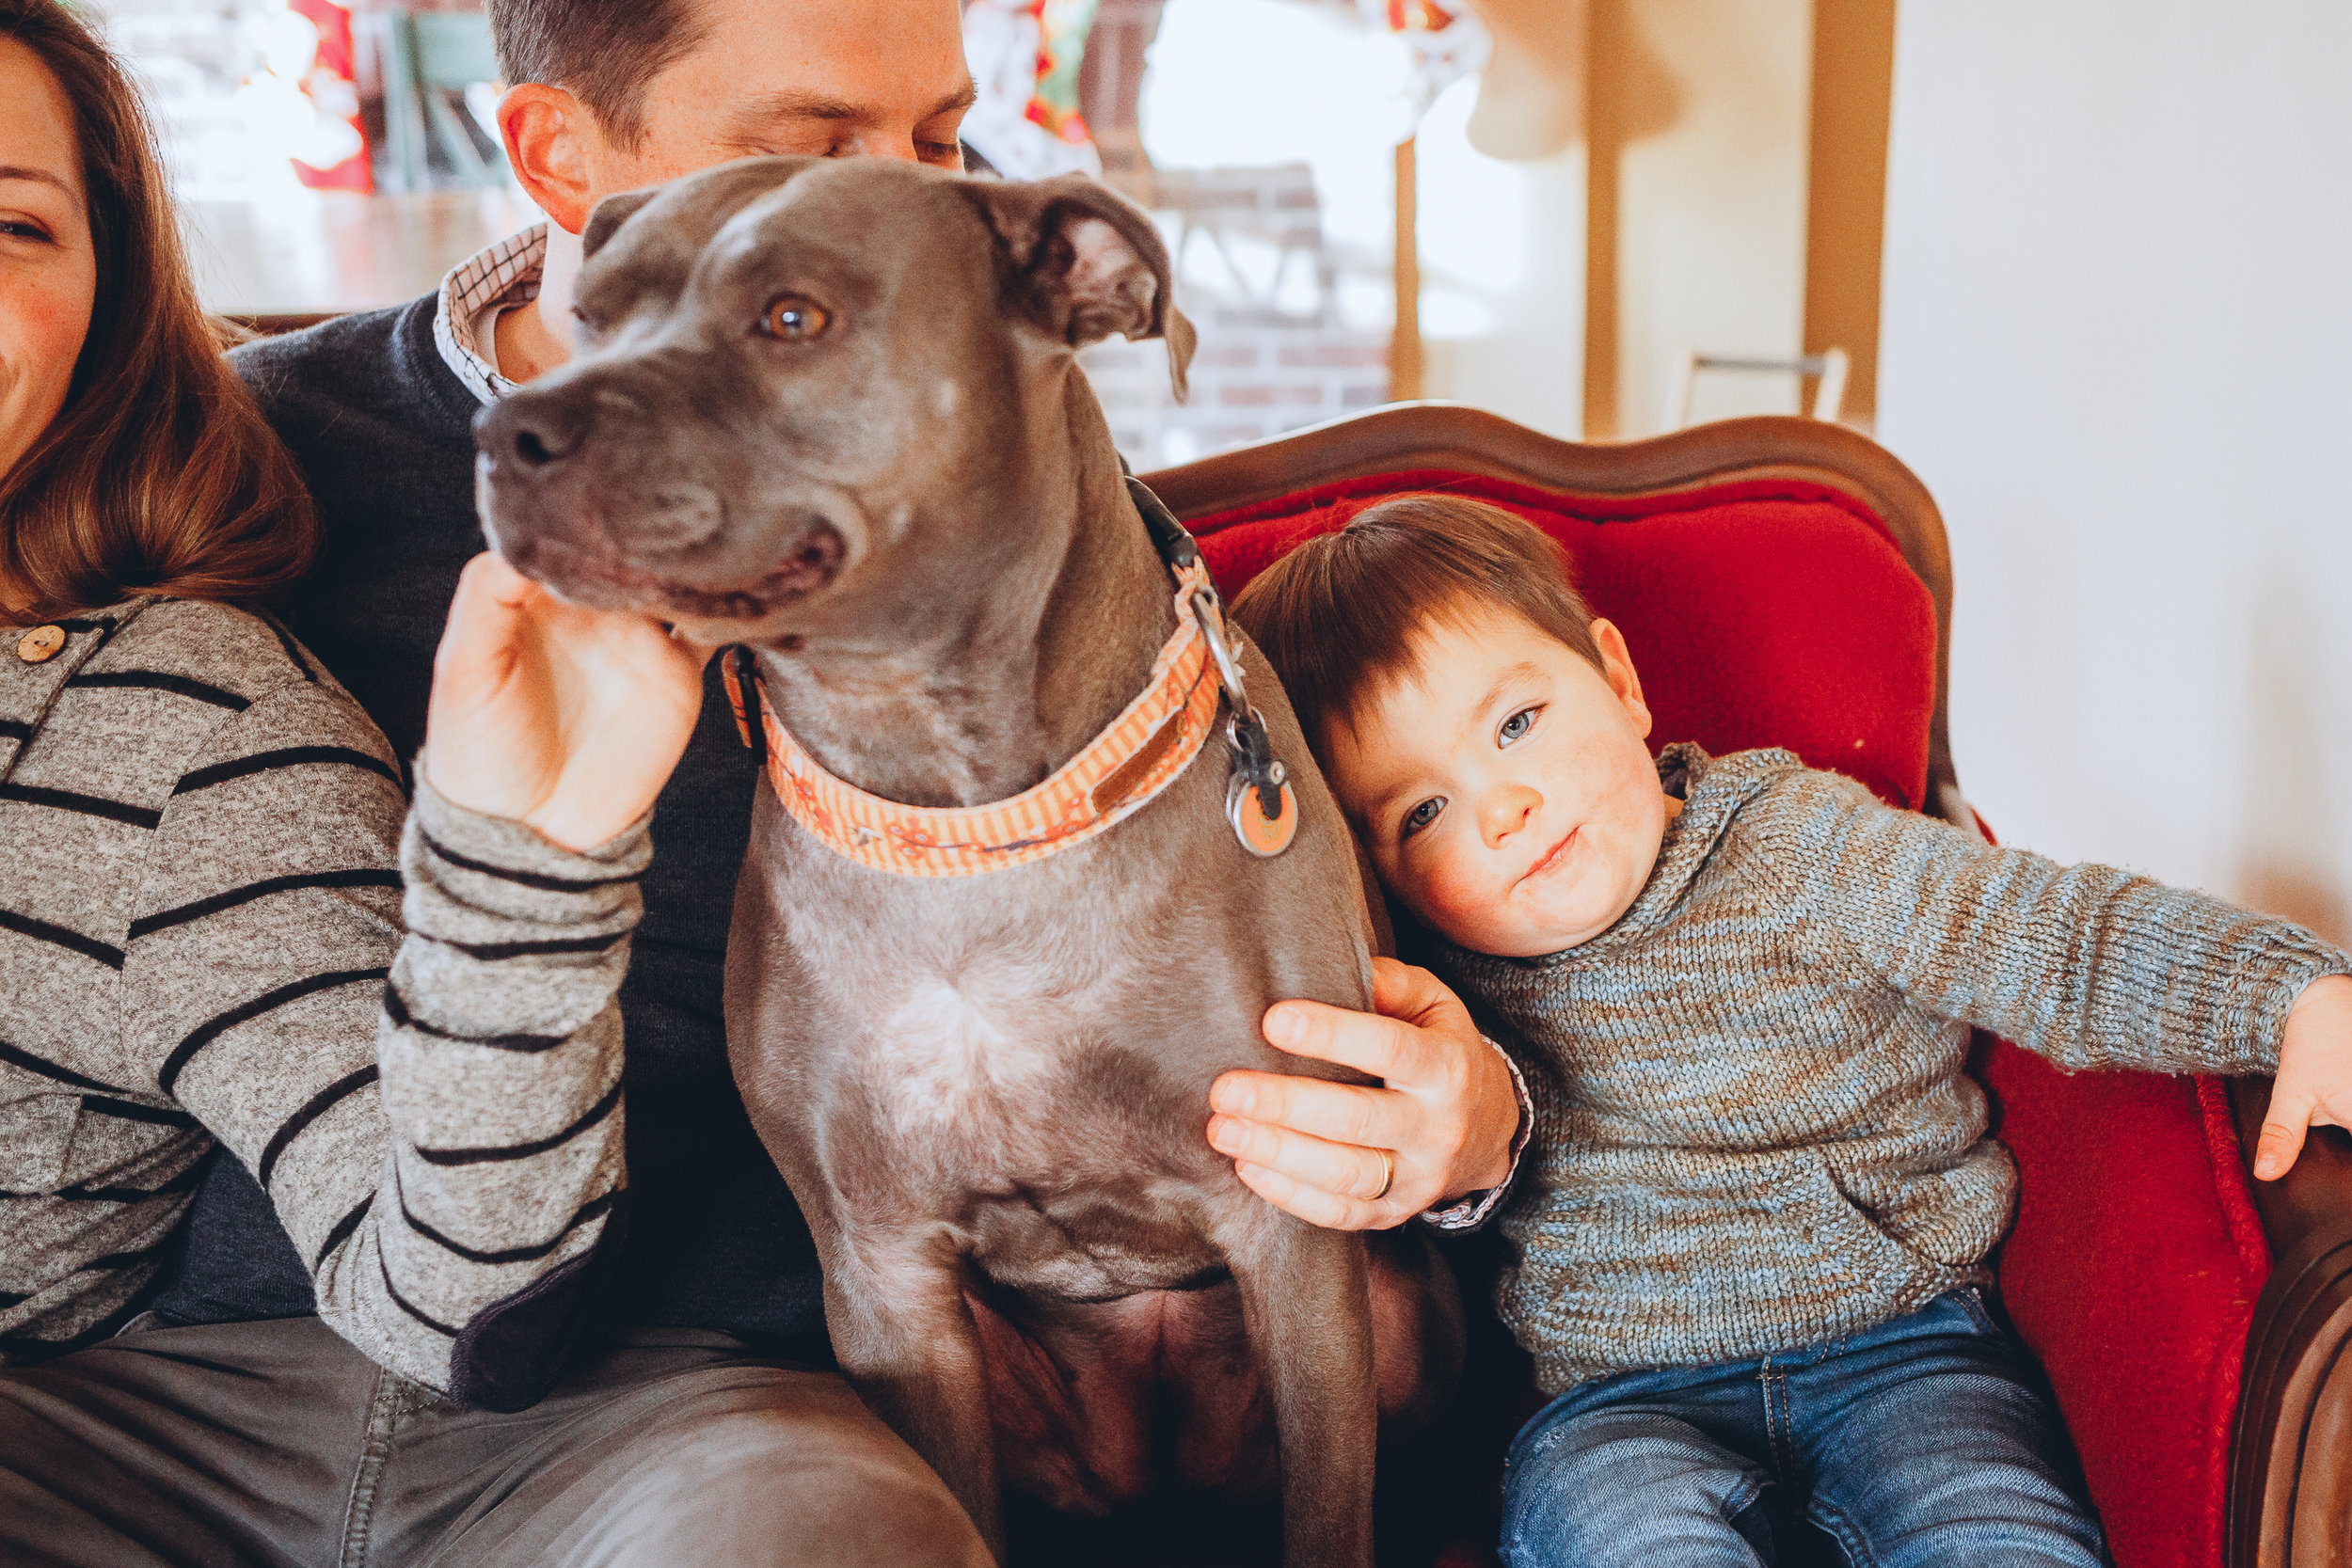 Sweet pit bull in Boston family photographs. Melrose family photography with Joy LeDuc.